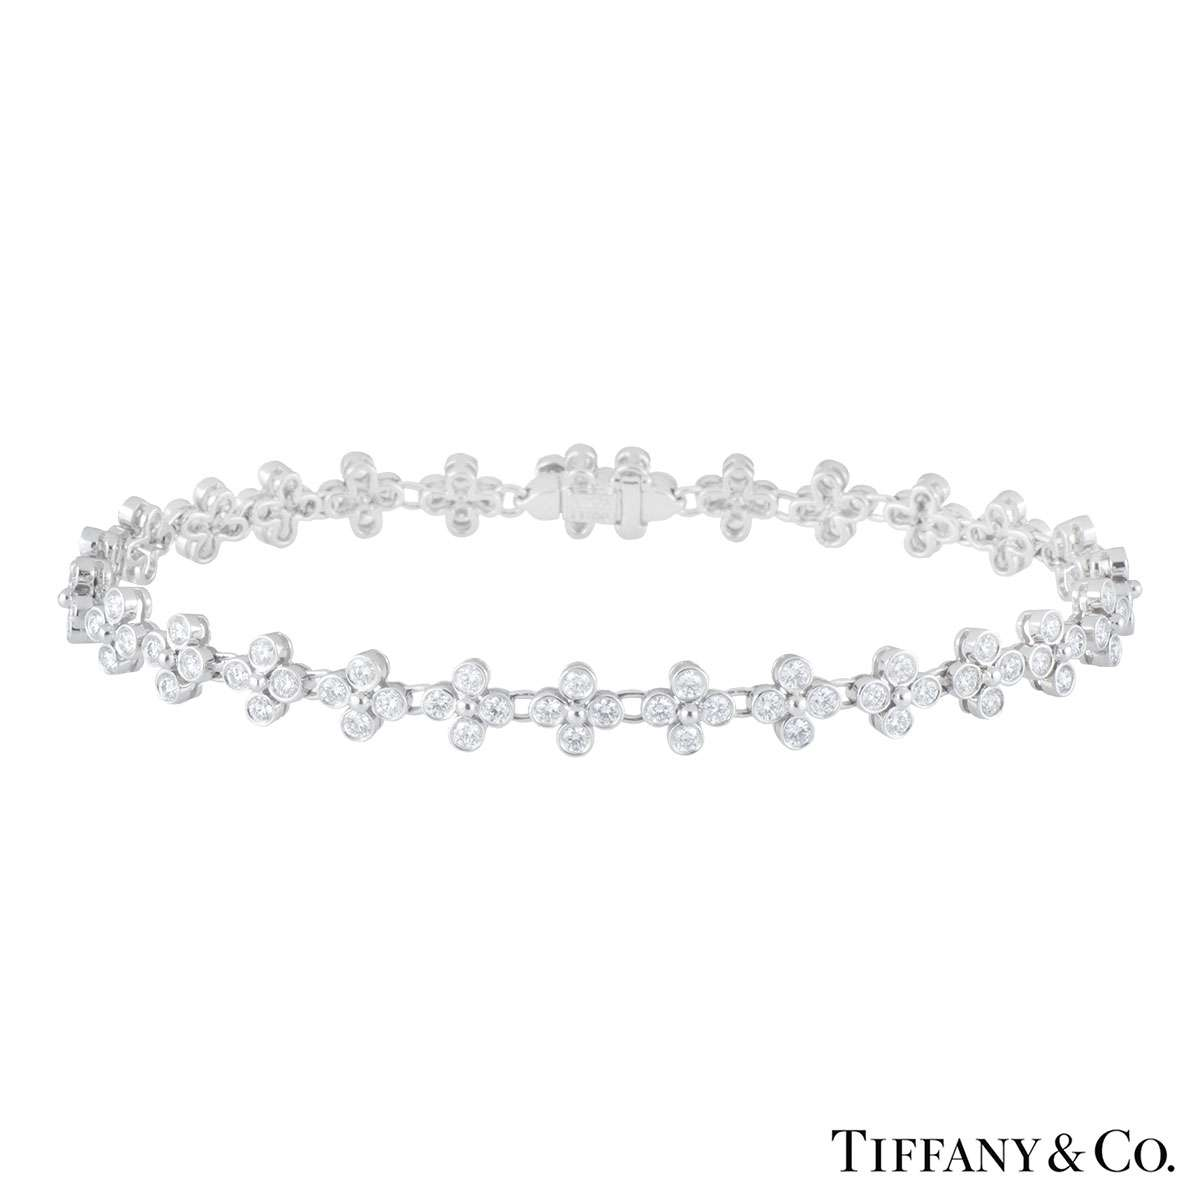 Tiffany & Co. Platinum Lace Diamond Bracelet